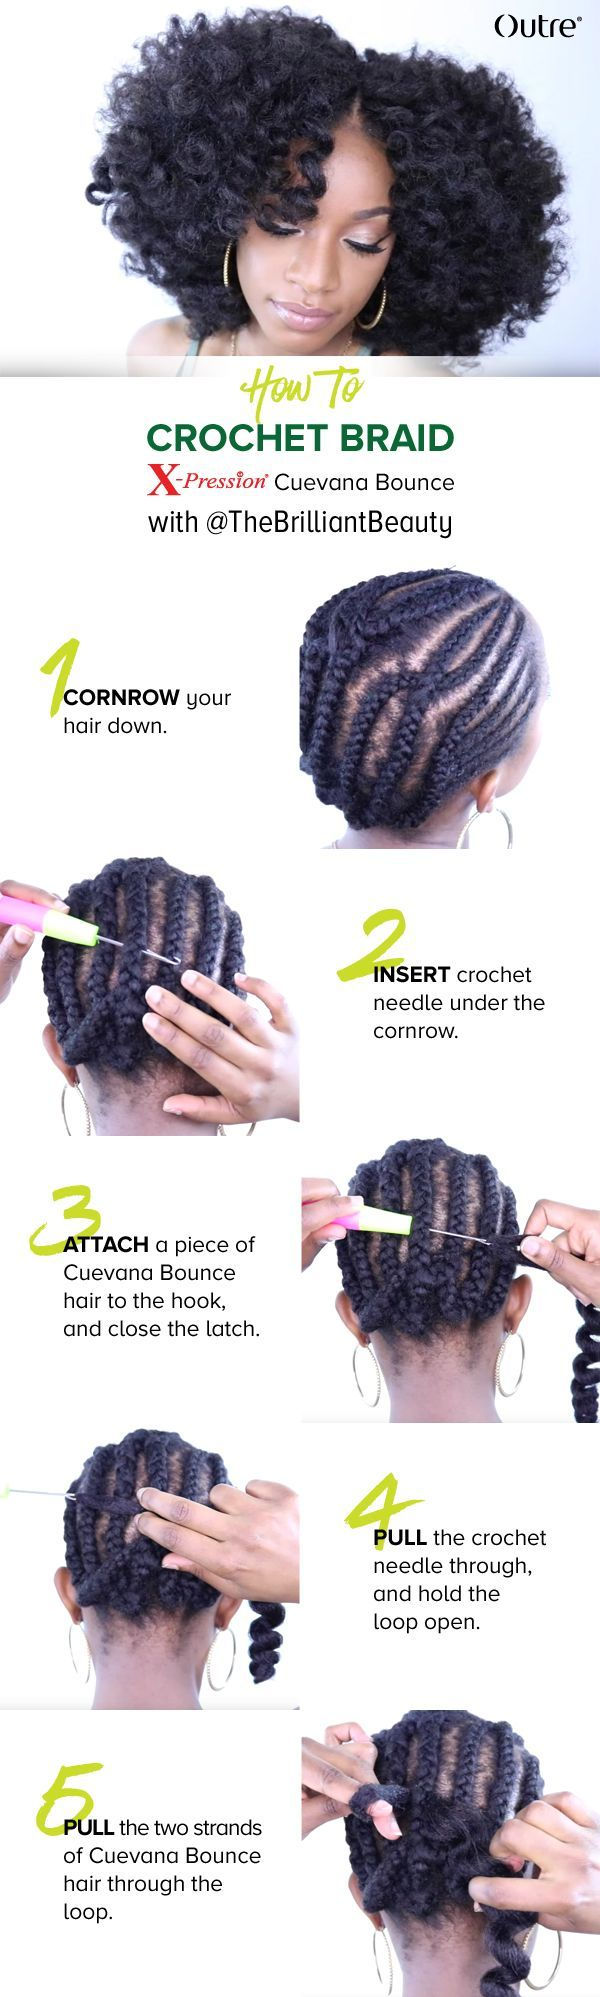 Learn how to Crochet Braid with @theBrilliantBeauty || Outre Xpression Cuevana Bounce